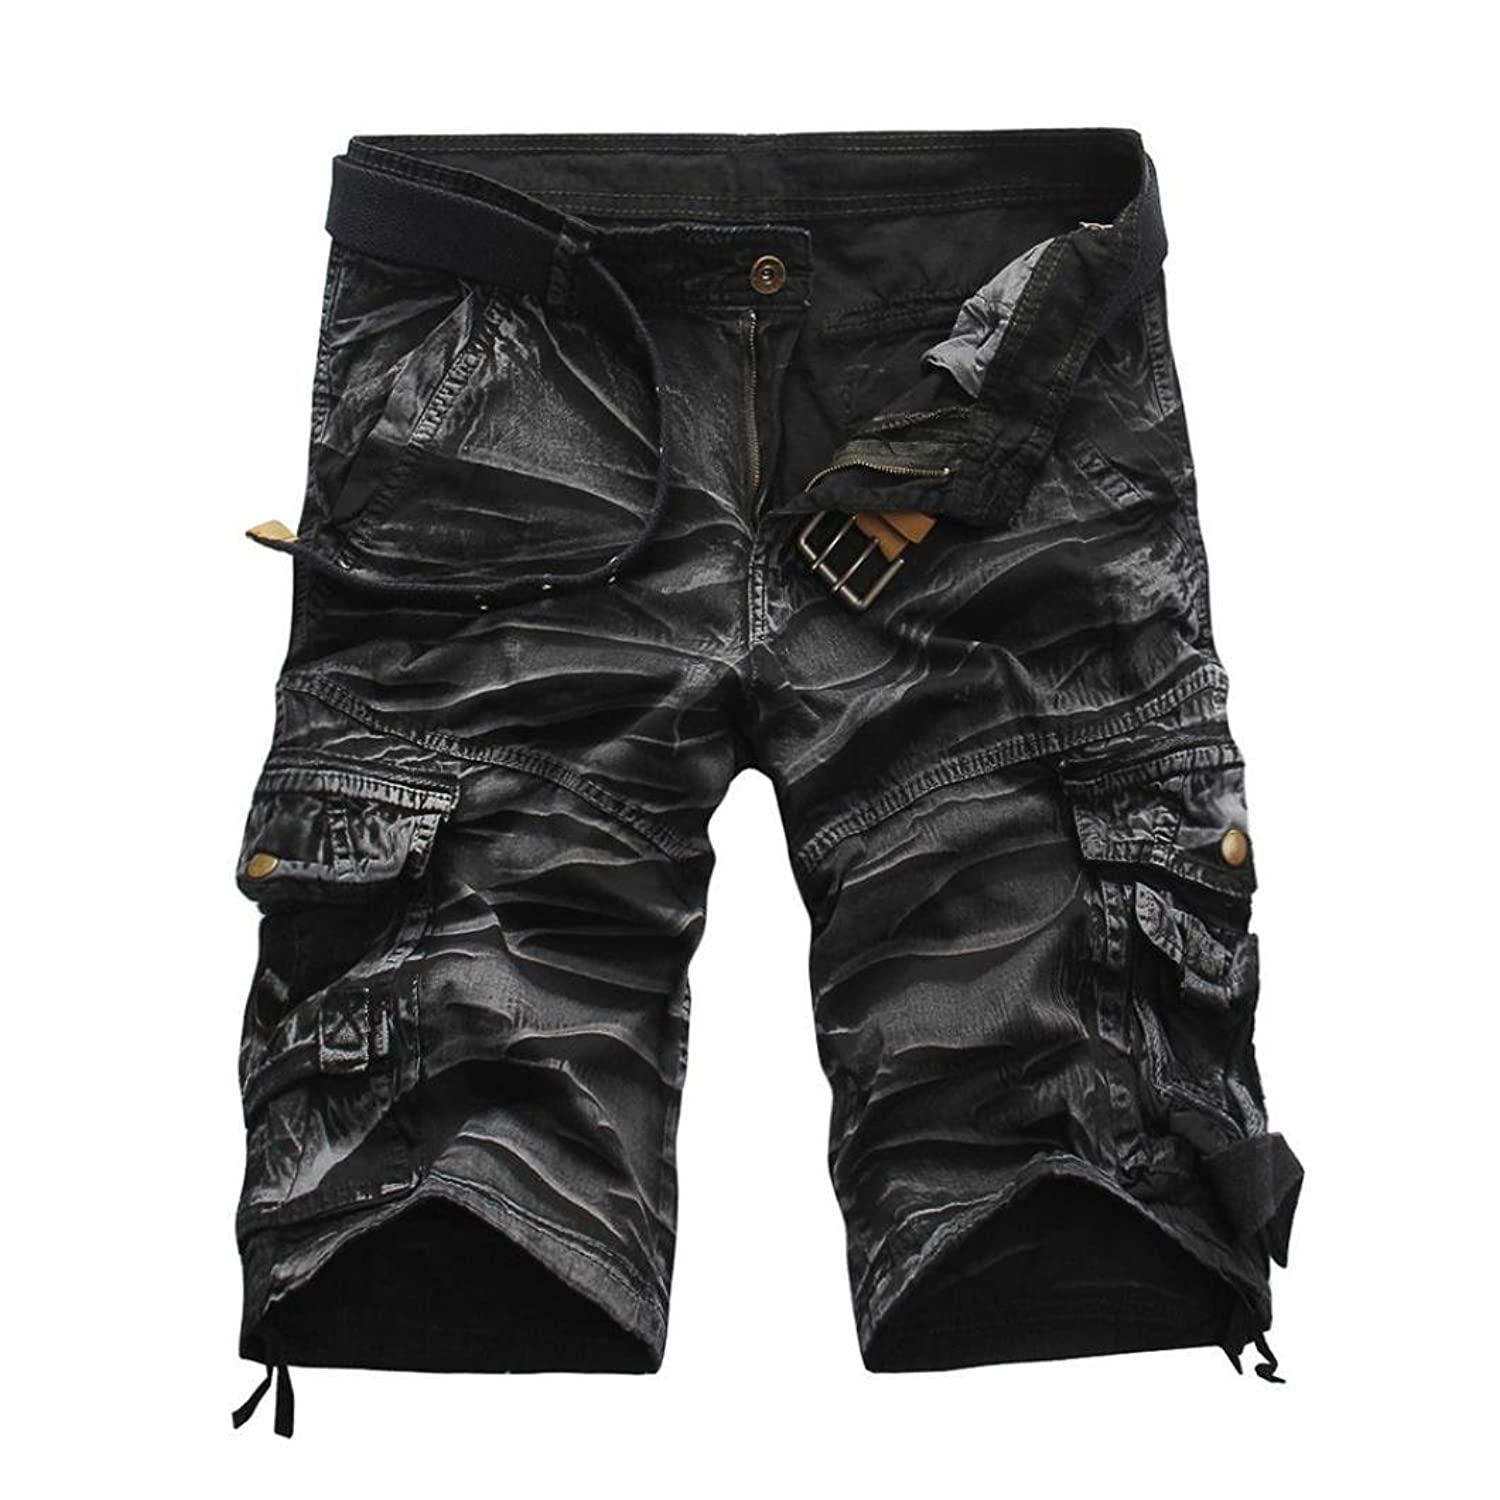 38e0ce448f Casual cargo Shorts are made of lightweight, comfortable, and breathable  material which are ideal for casual daily wear or sports outdoor recreation  in ...